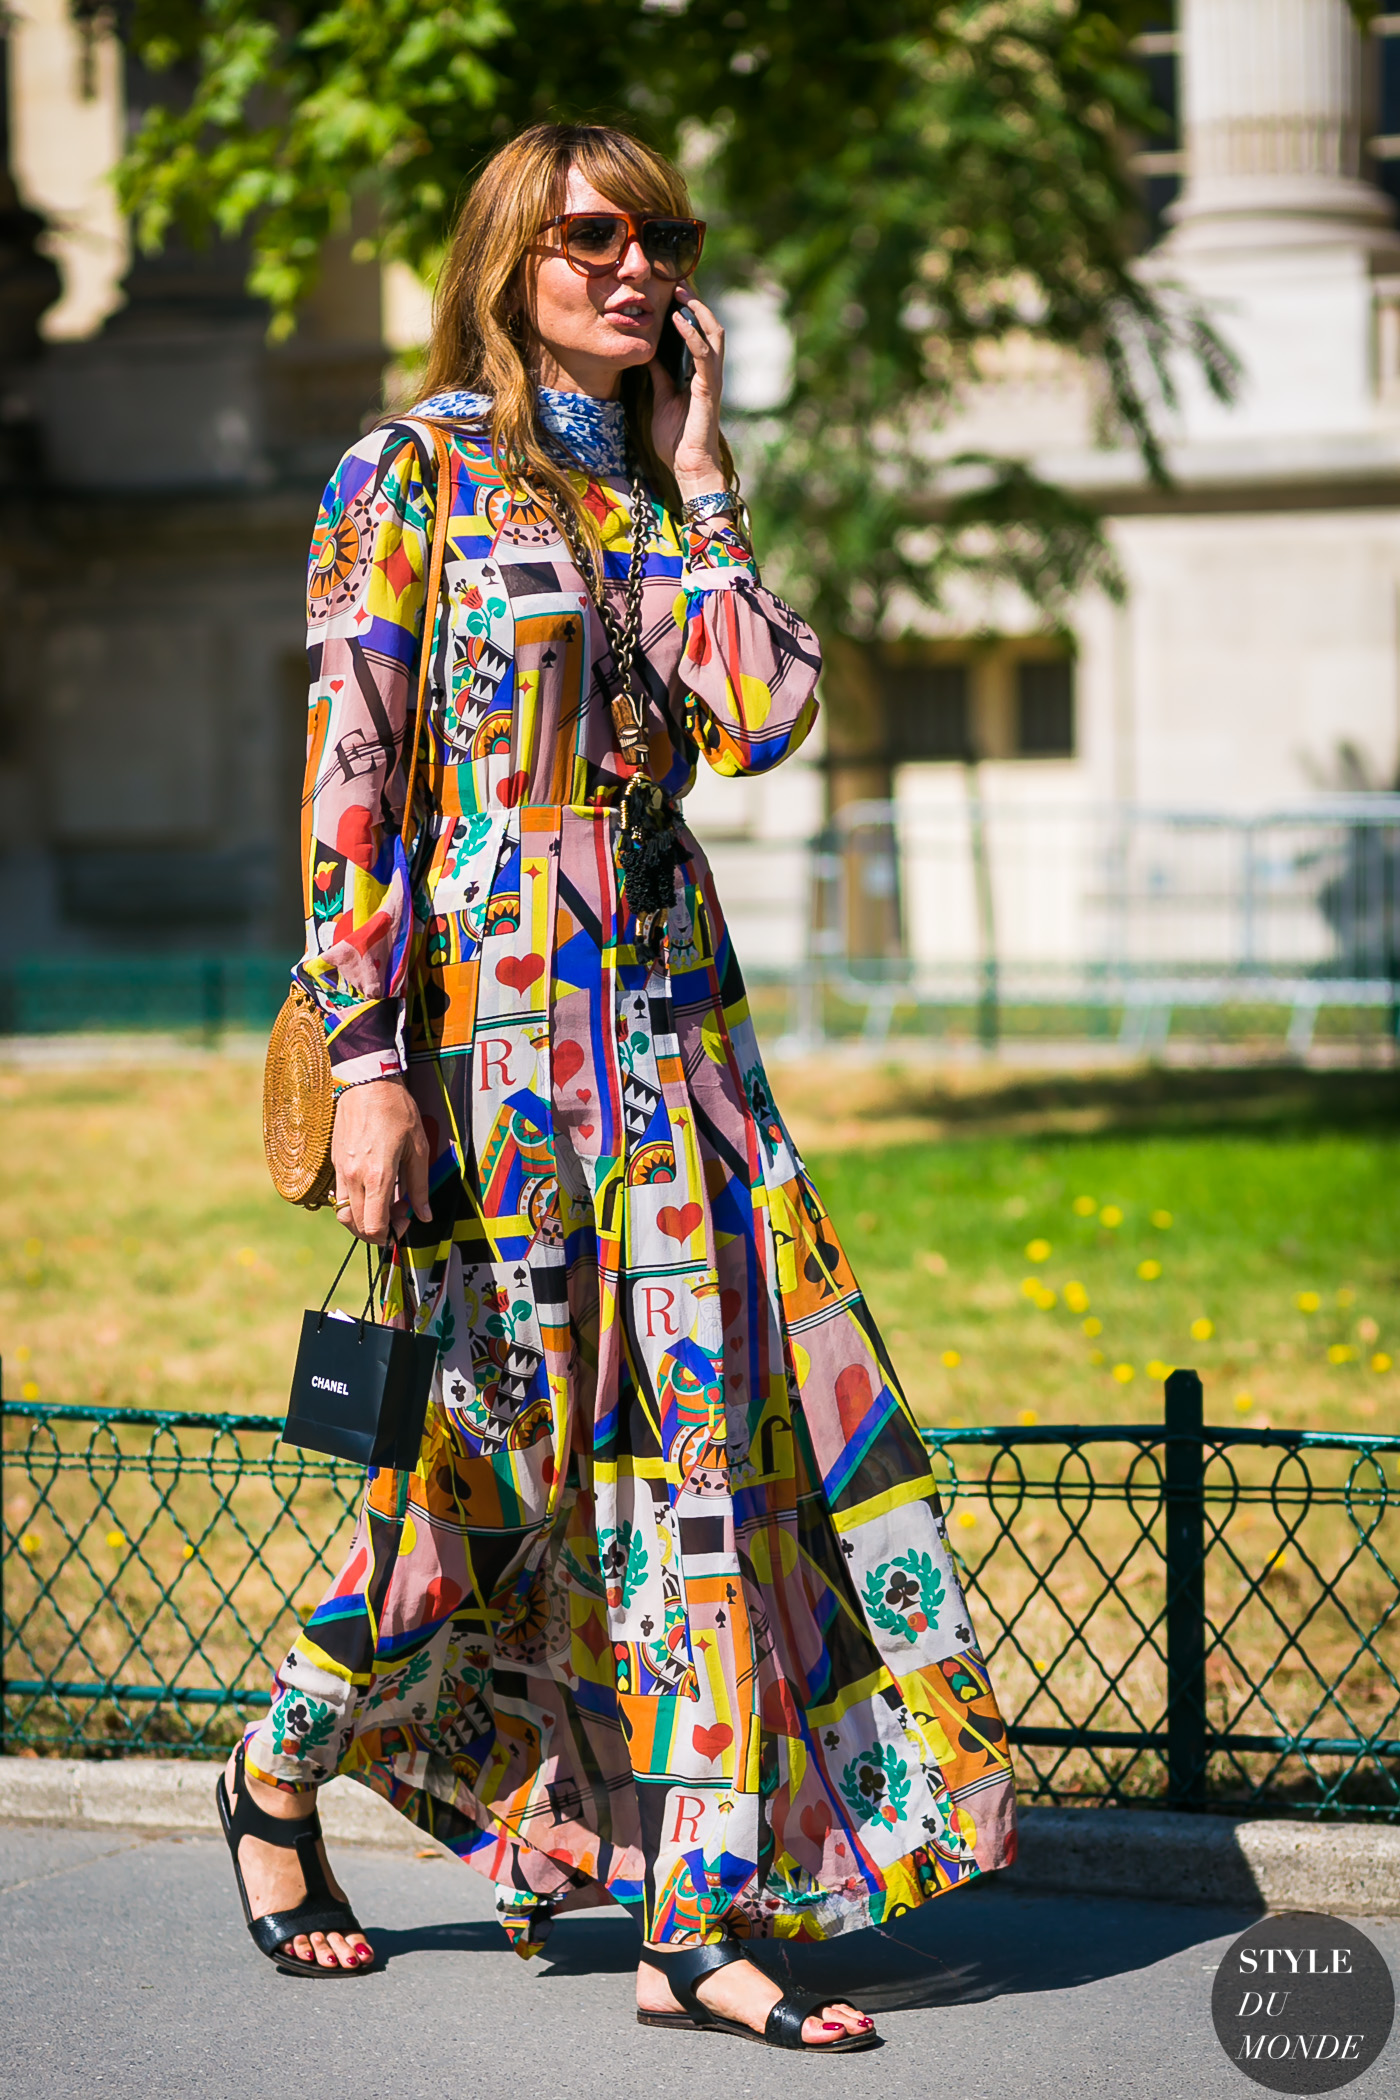 Ece Sukan by STYLEDUMONDE Street Style Fashion Photography